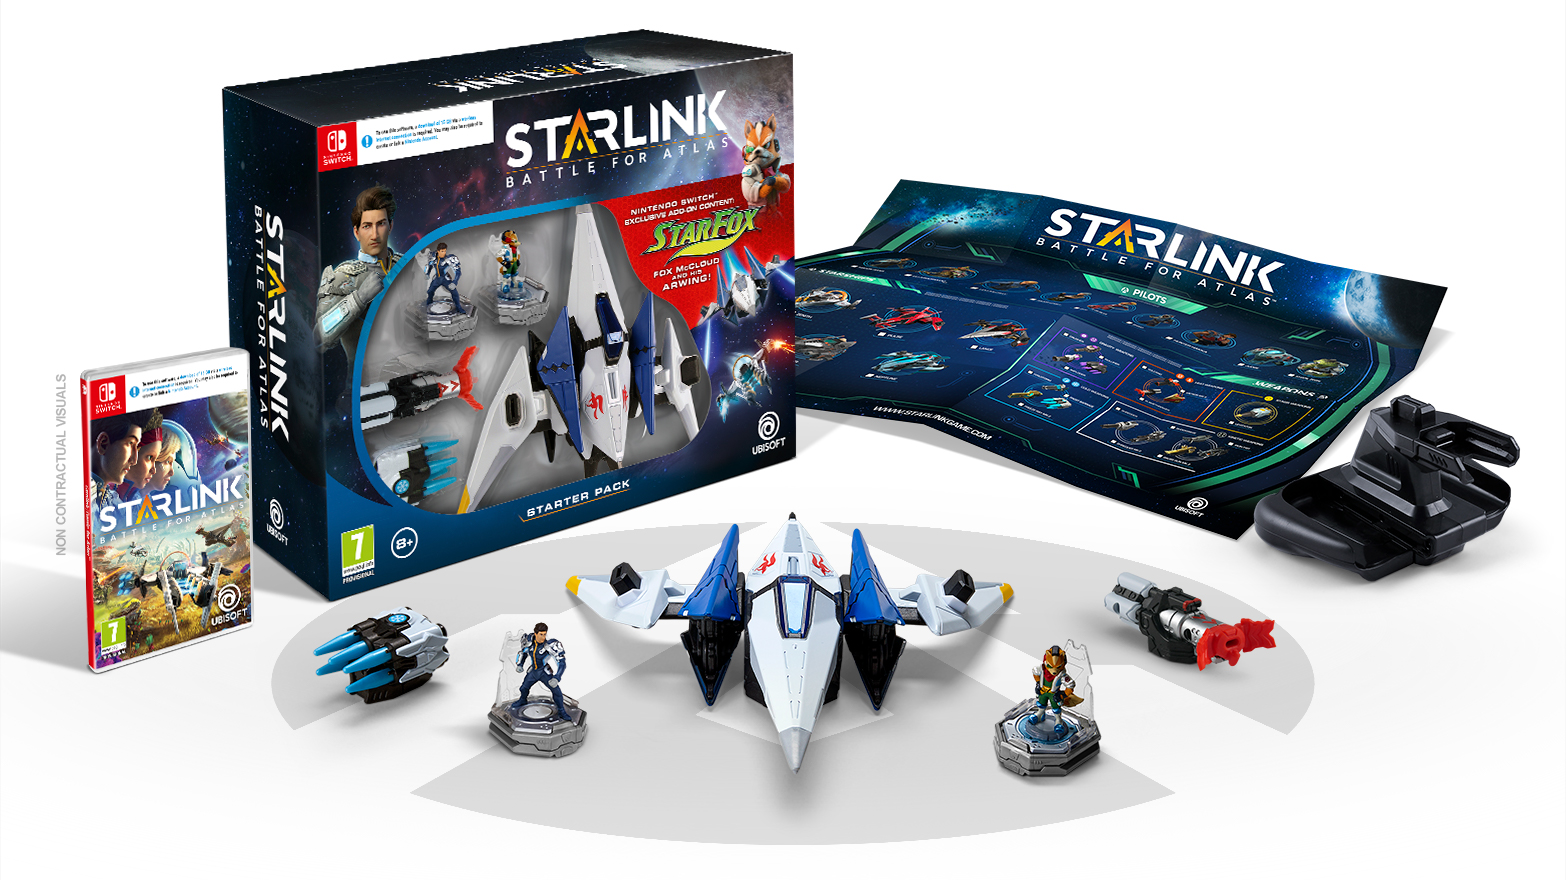 Ubisoft cancels Starlink physical toys following game's under performance